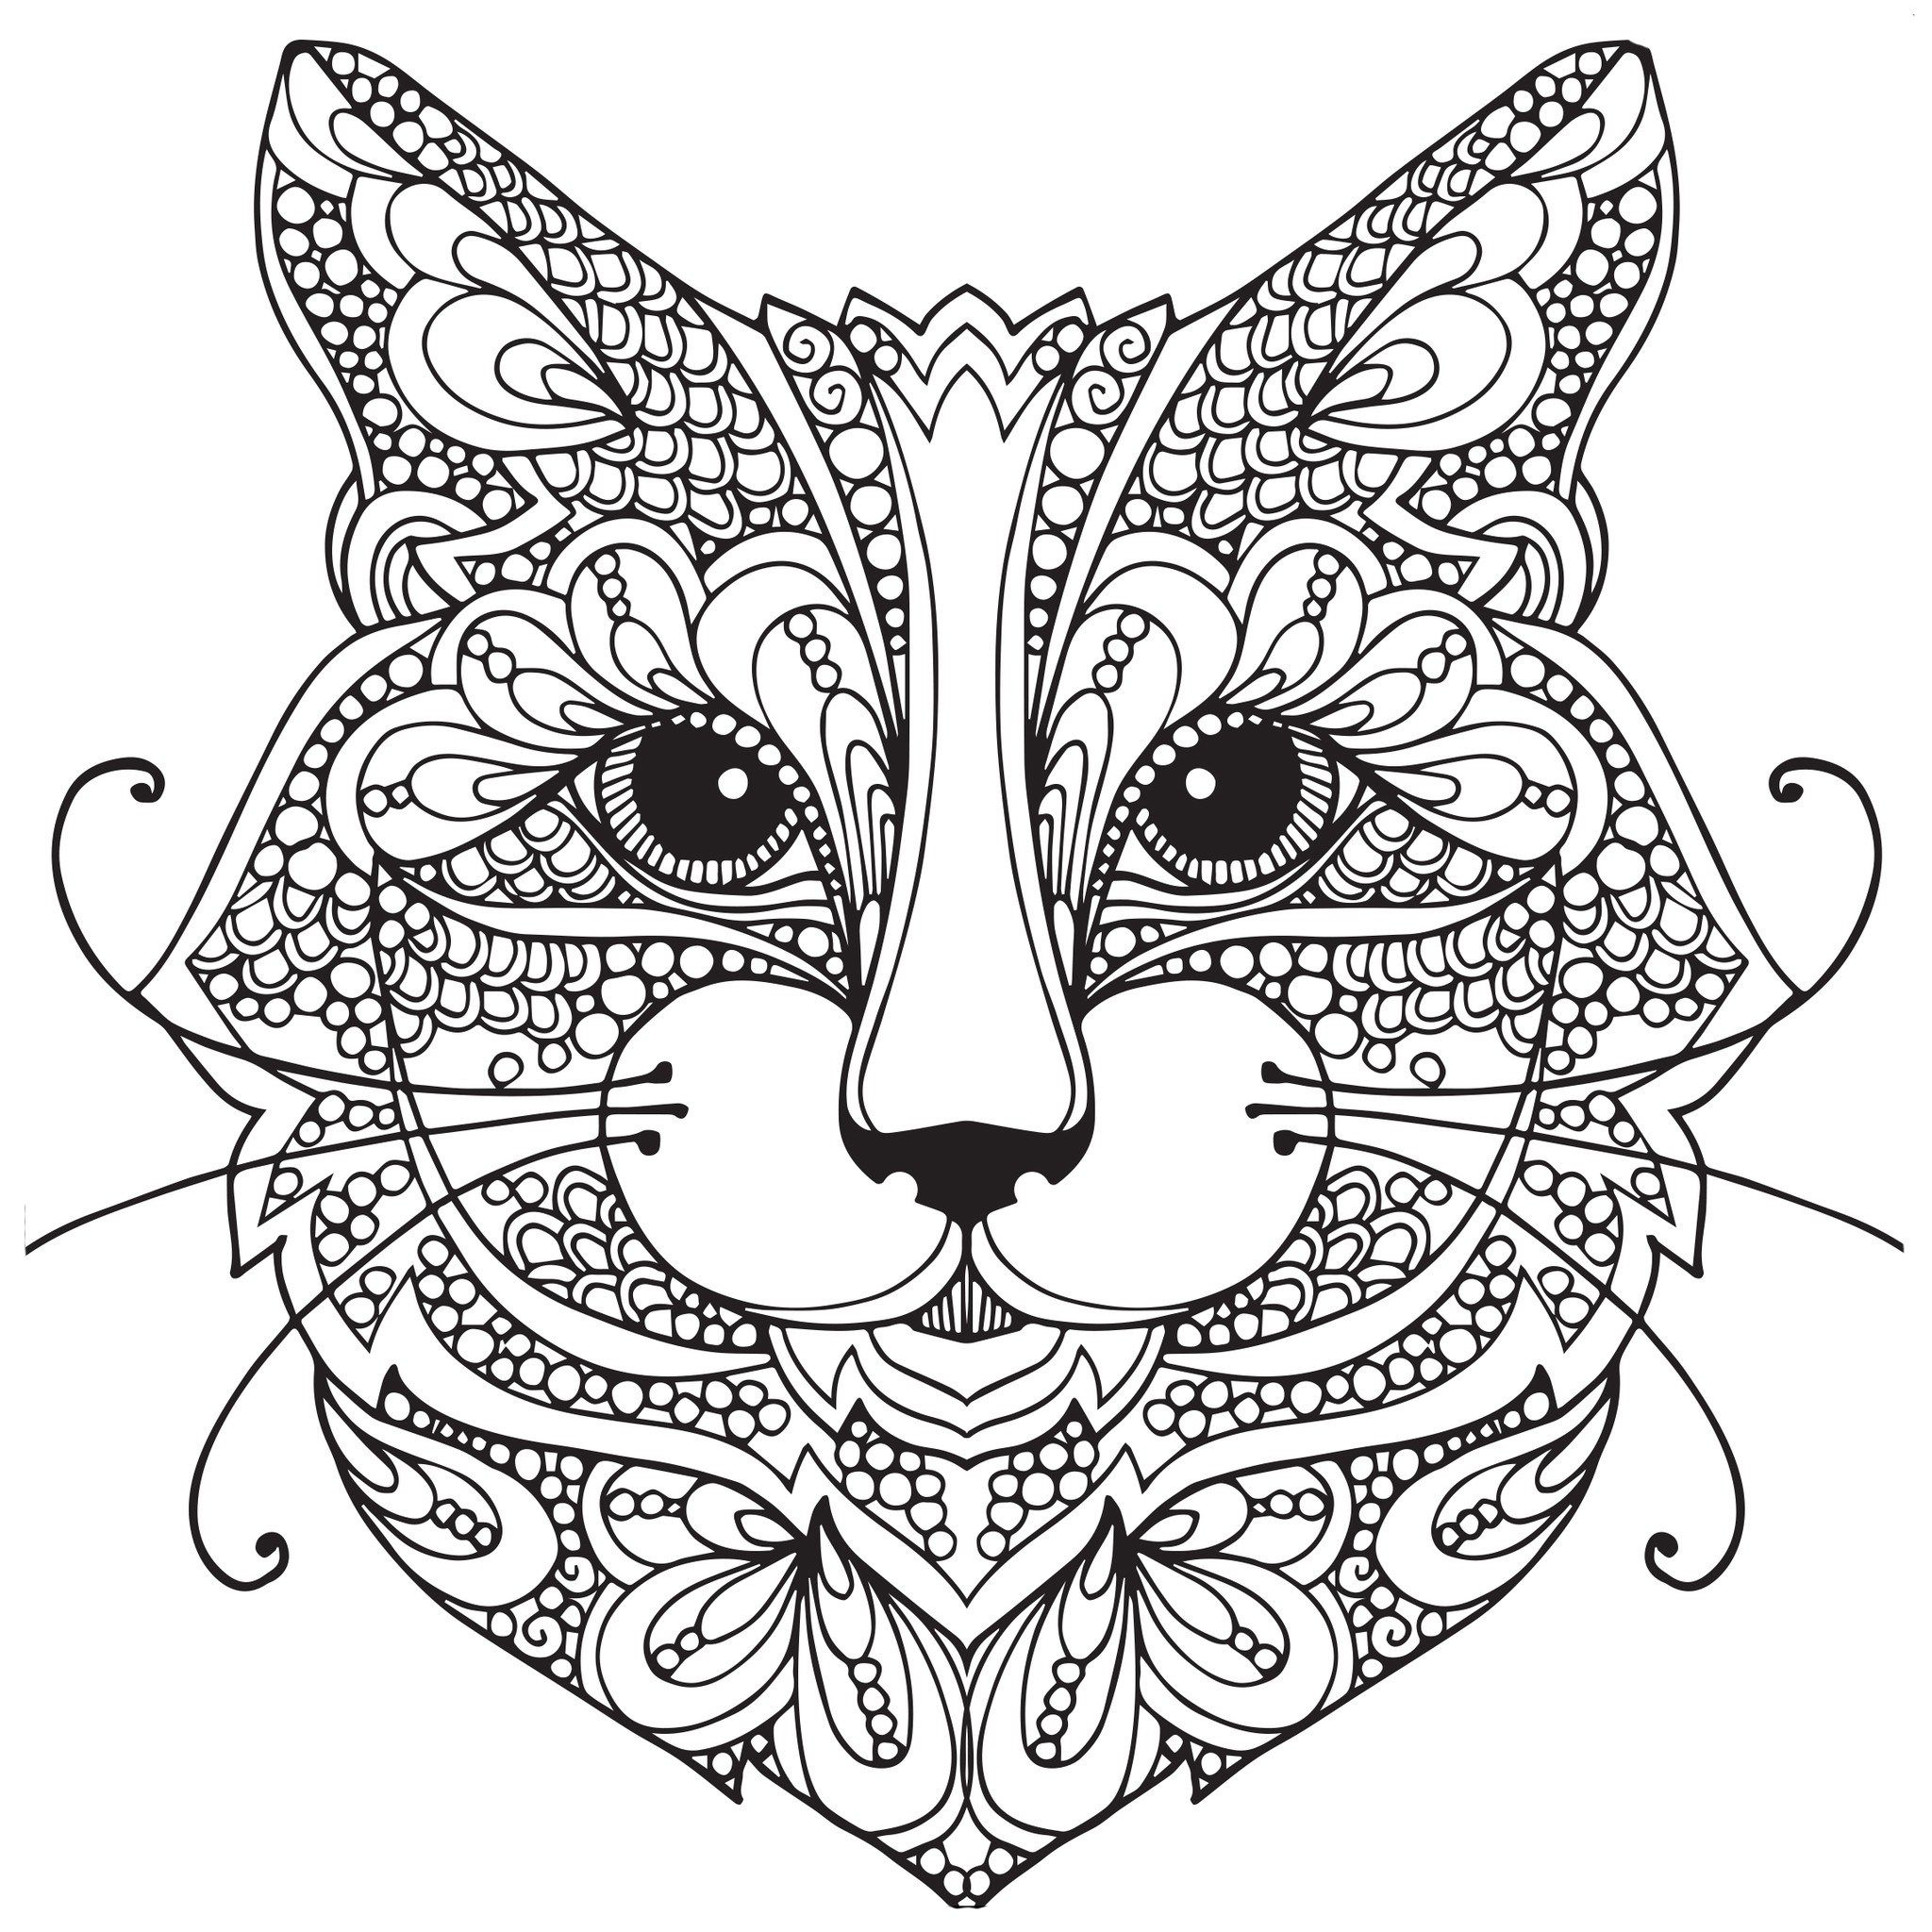 Adult Coloring Pages Cat 1 Coloring Pages Pinterest